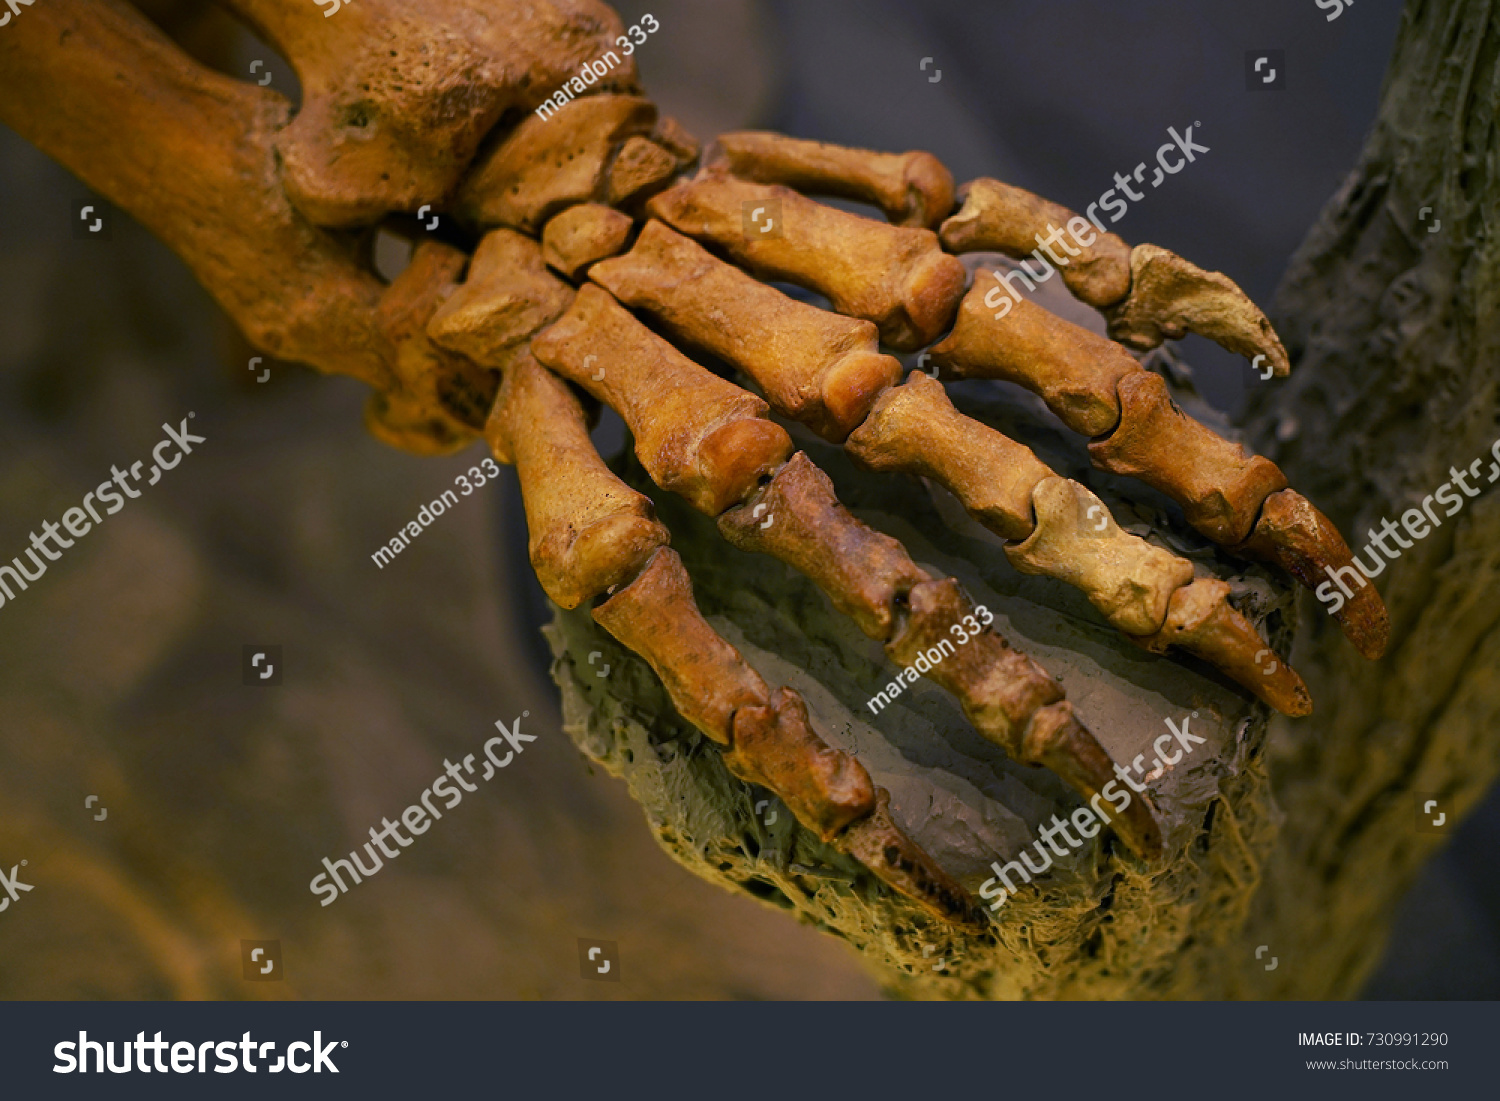 Mammal Arm Bone Hold Tree Trunk Stock Photo (Royalty Free) 730991290 ...